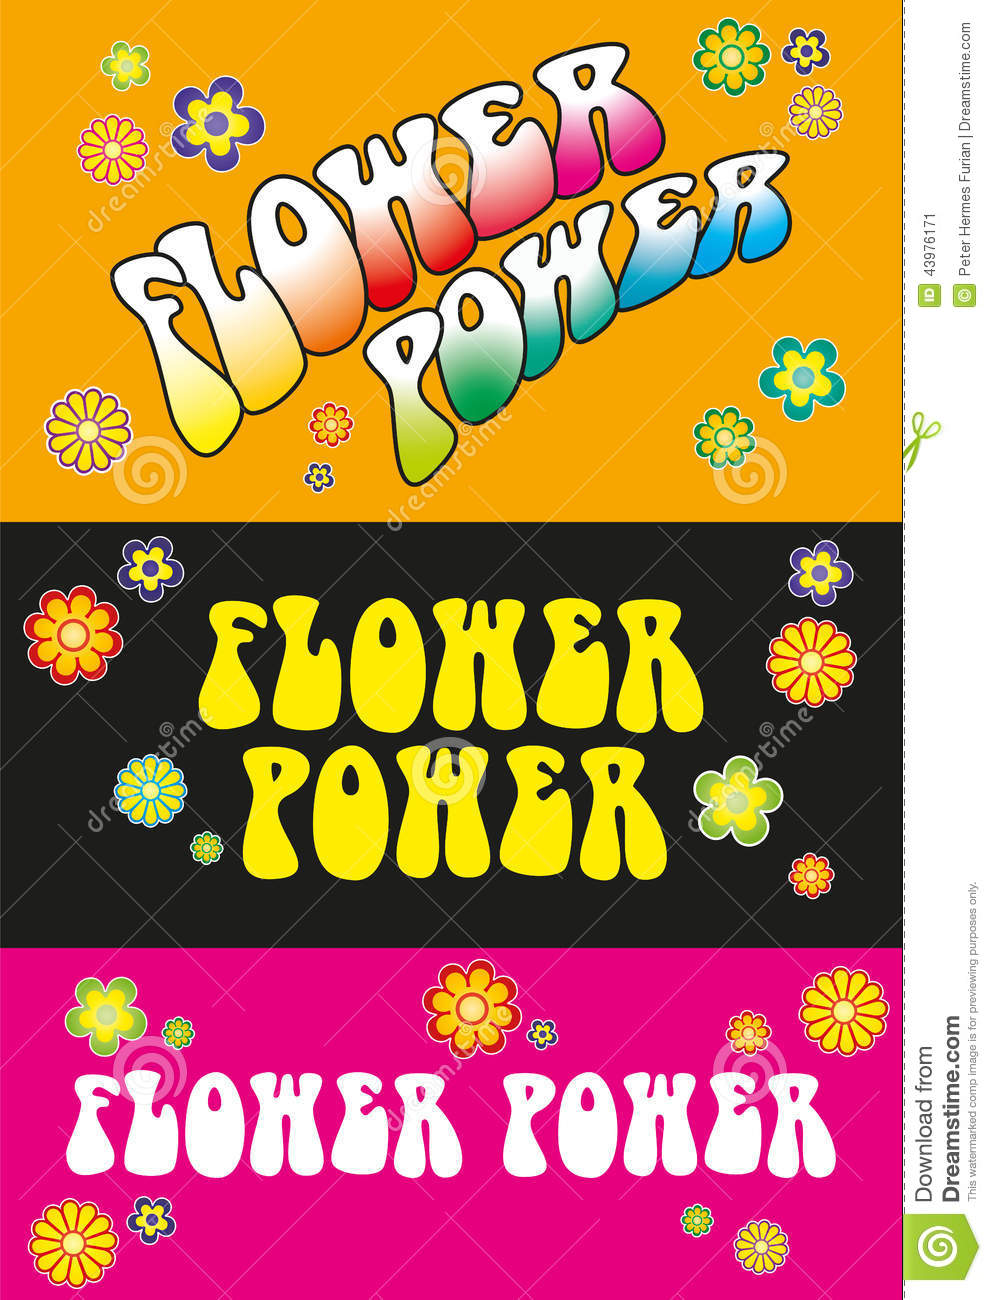 Flower Power Lettering Stock Vector  Image 43976171. Online Coupons. Graduation Murals. Rectangular Banners. Bear Hunting Decals. Romantic Murals. Lung Abscess Signs. Inappropriate Signs. Iron Man Logo